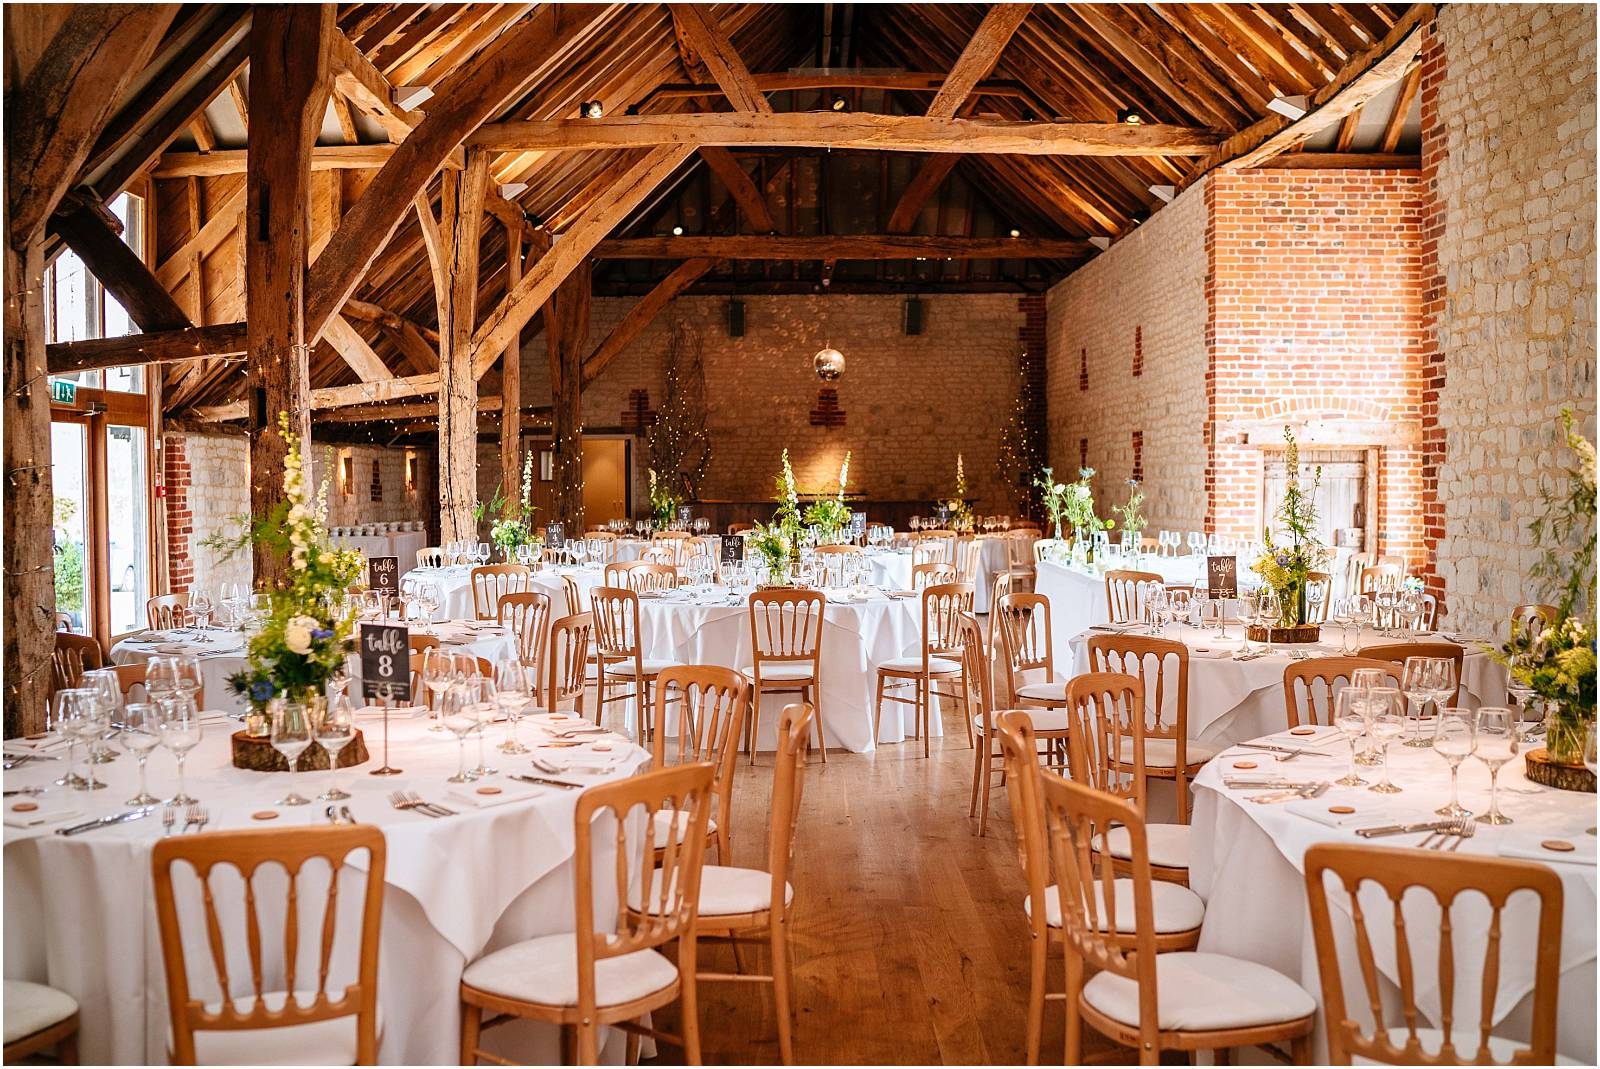 bury court barn set up for wedding